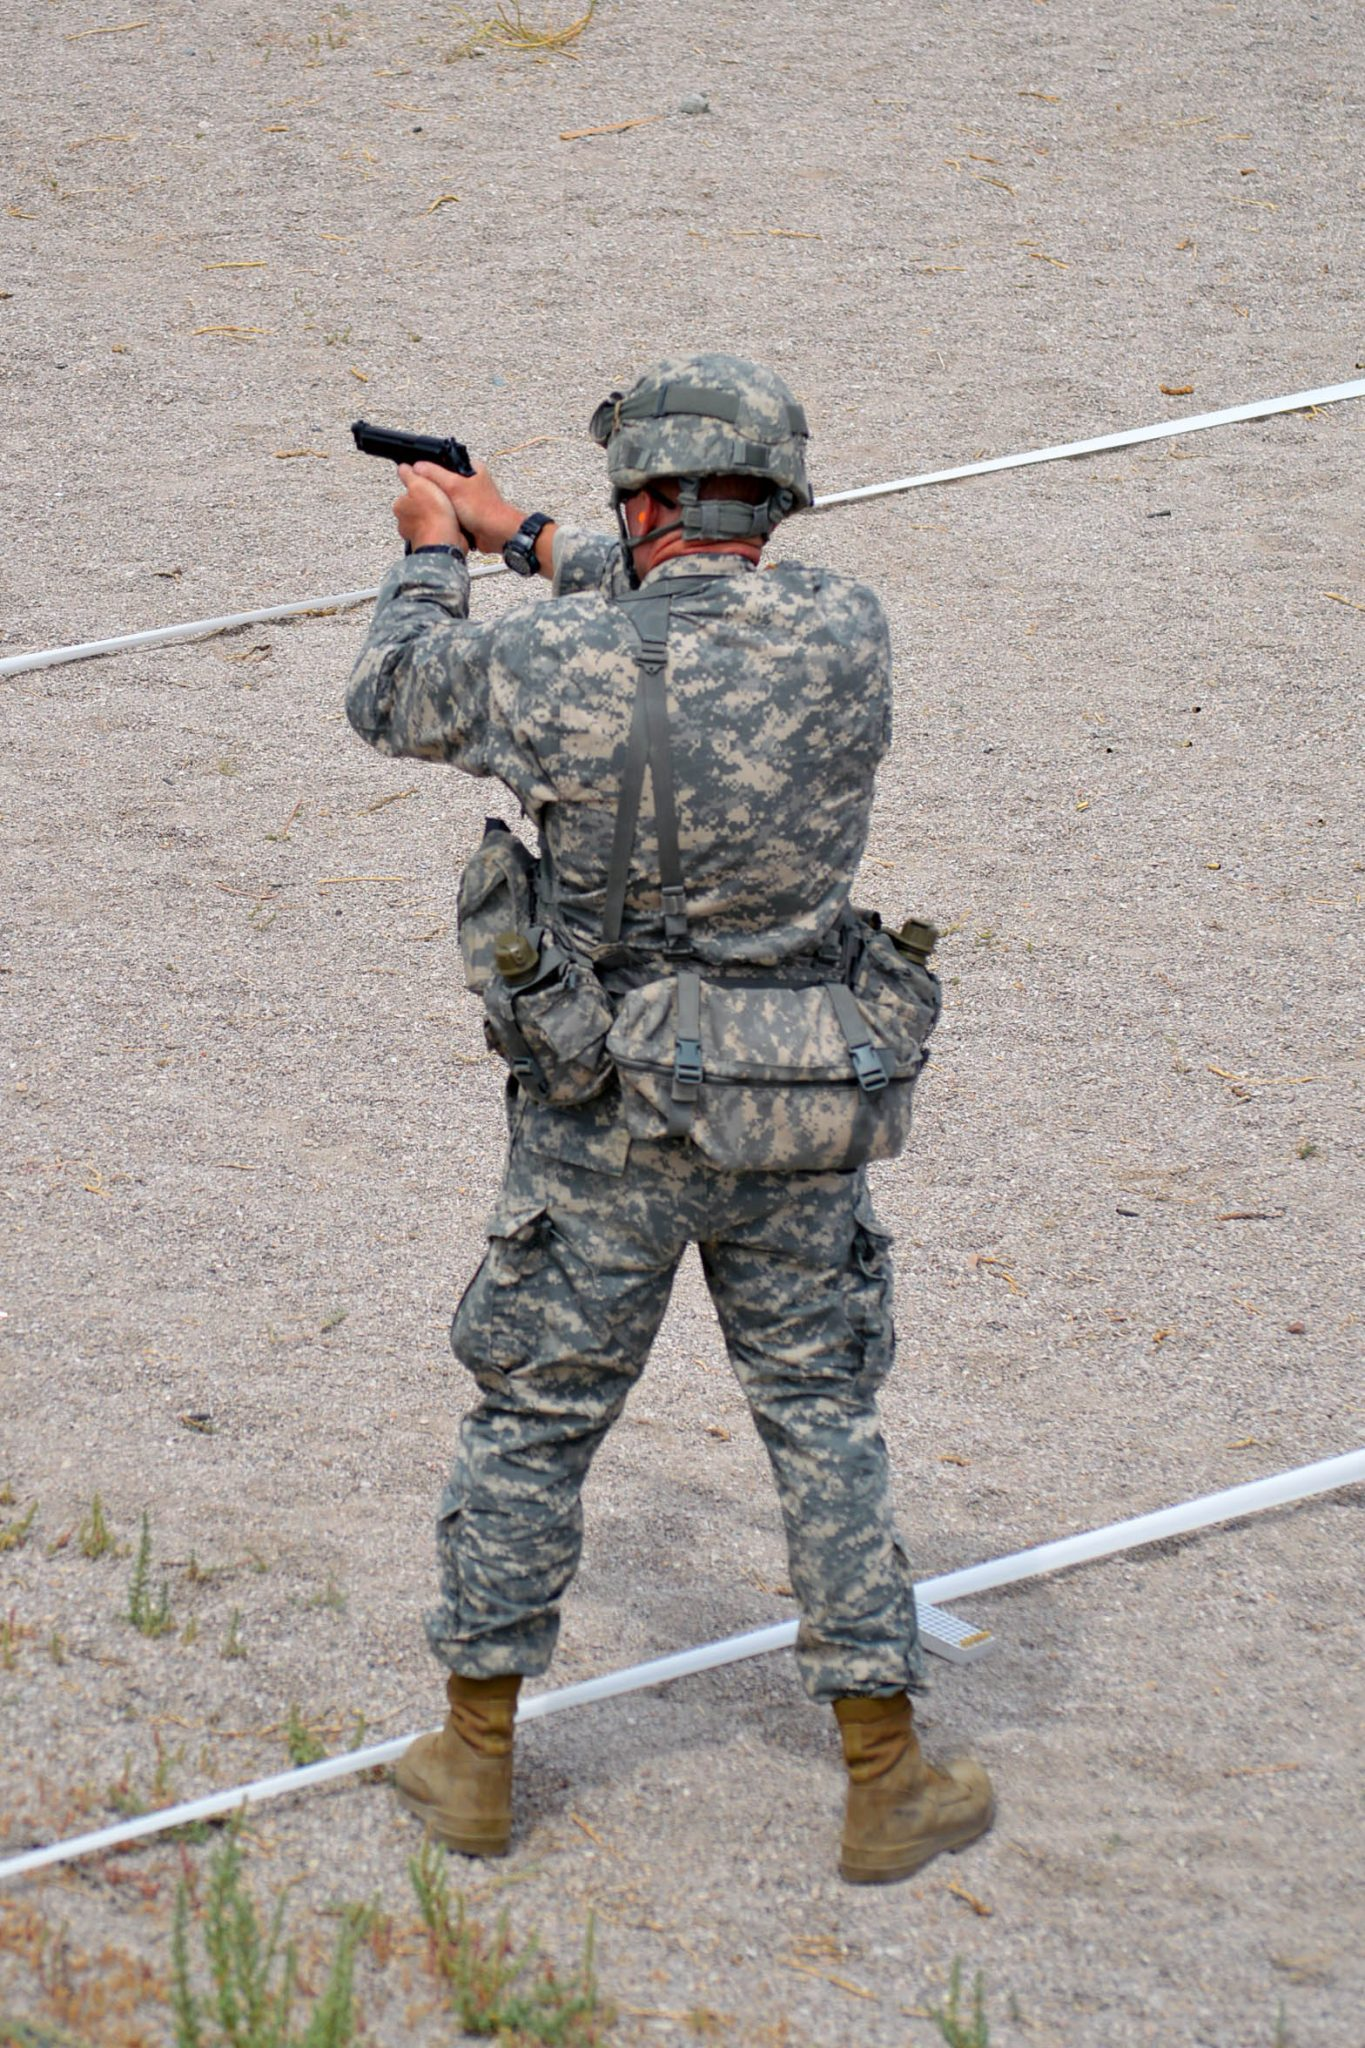 National Guard sharpshooters compete at depot